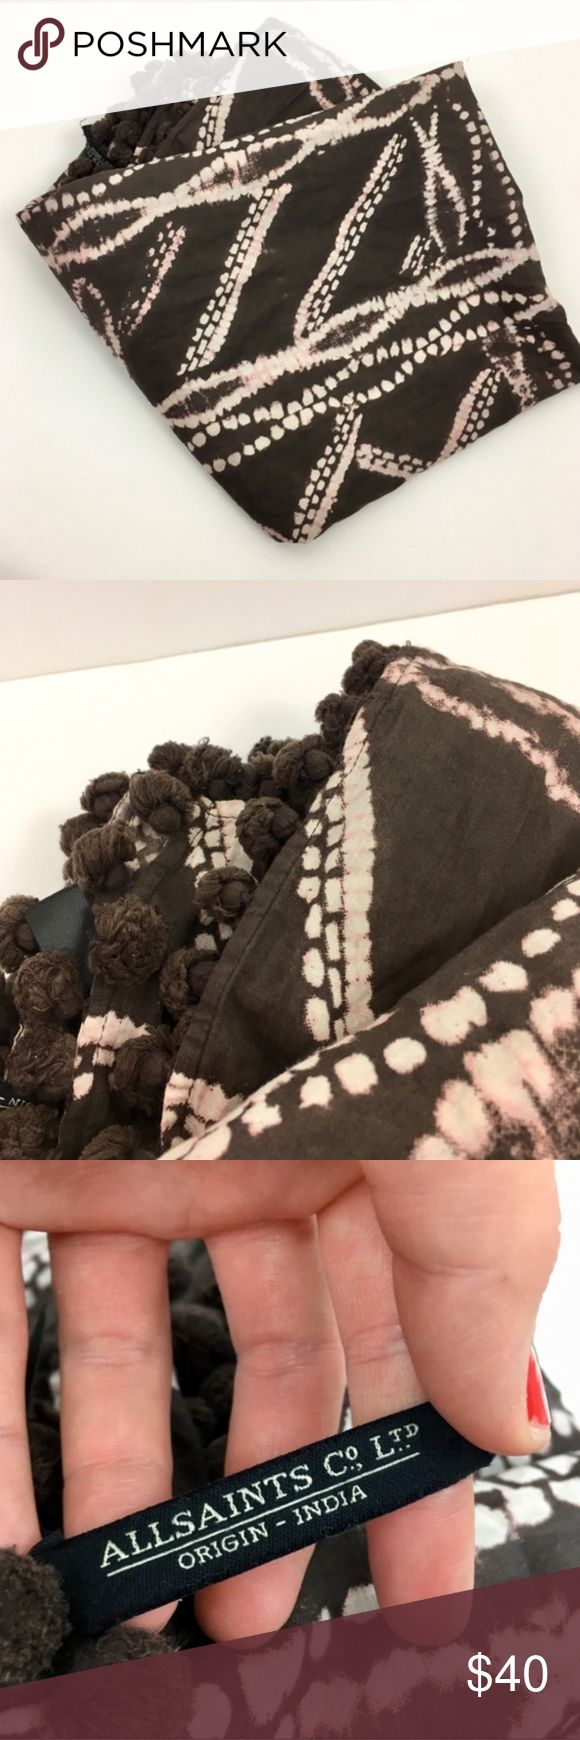 All Saints Brown Pom Pom Bandini Scarf Brown cotton scarf with a pale pink print. 100% cotton printed large scarf with tonal pom pom tassles on each side. The print has been inspired by traditional hand dyed bandini patterns. Size 210cm x 100cm. 100% Cotton. EUC - no signs of wear. All Saints Accessories Scarves & Wraps